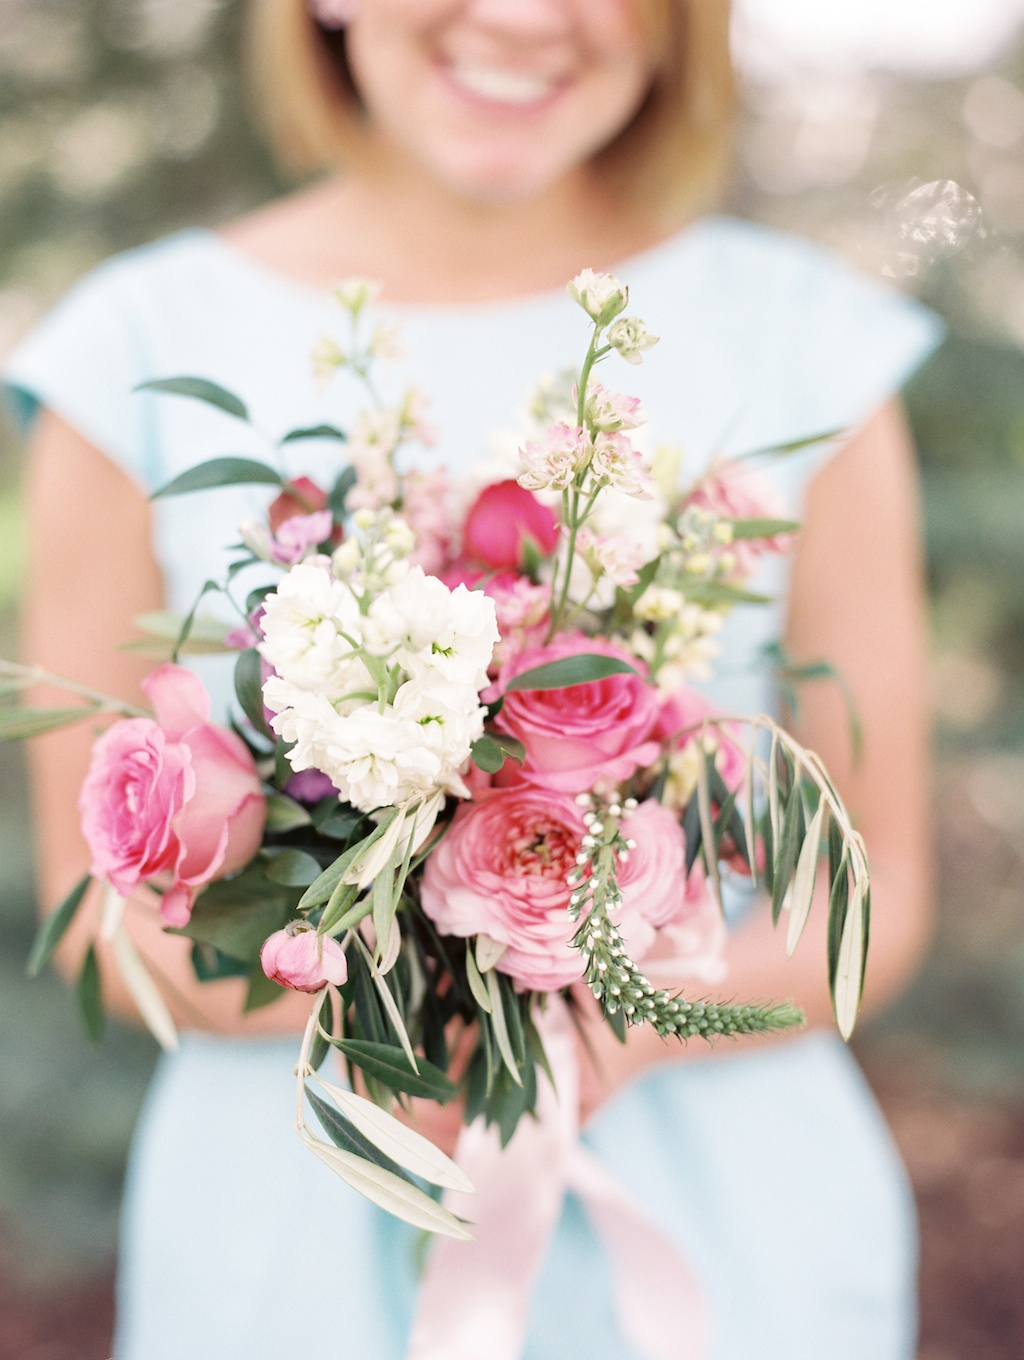 organic style bouquet pink garden rose bouquet russian olive bouquet utah wedding florist calie rose utah weddings